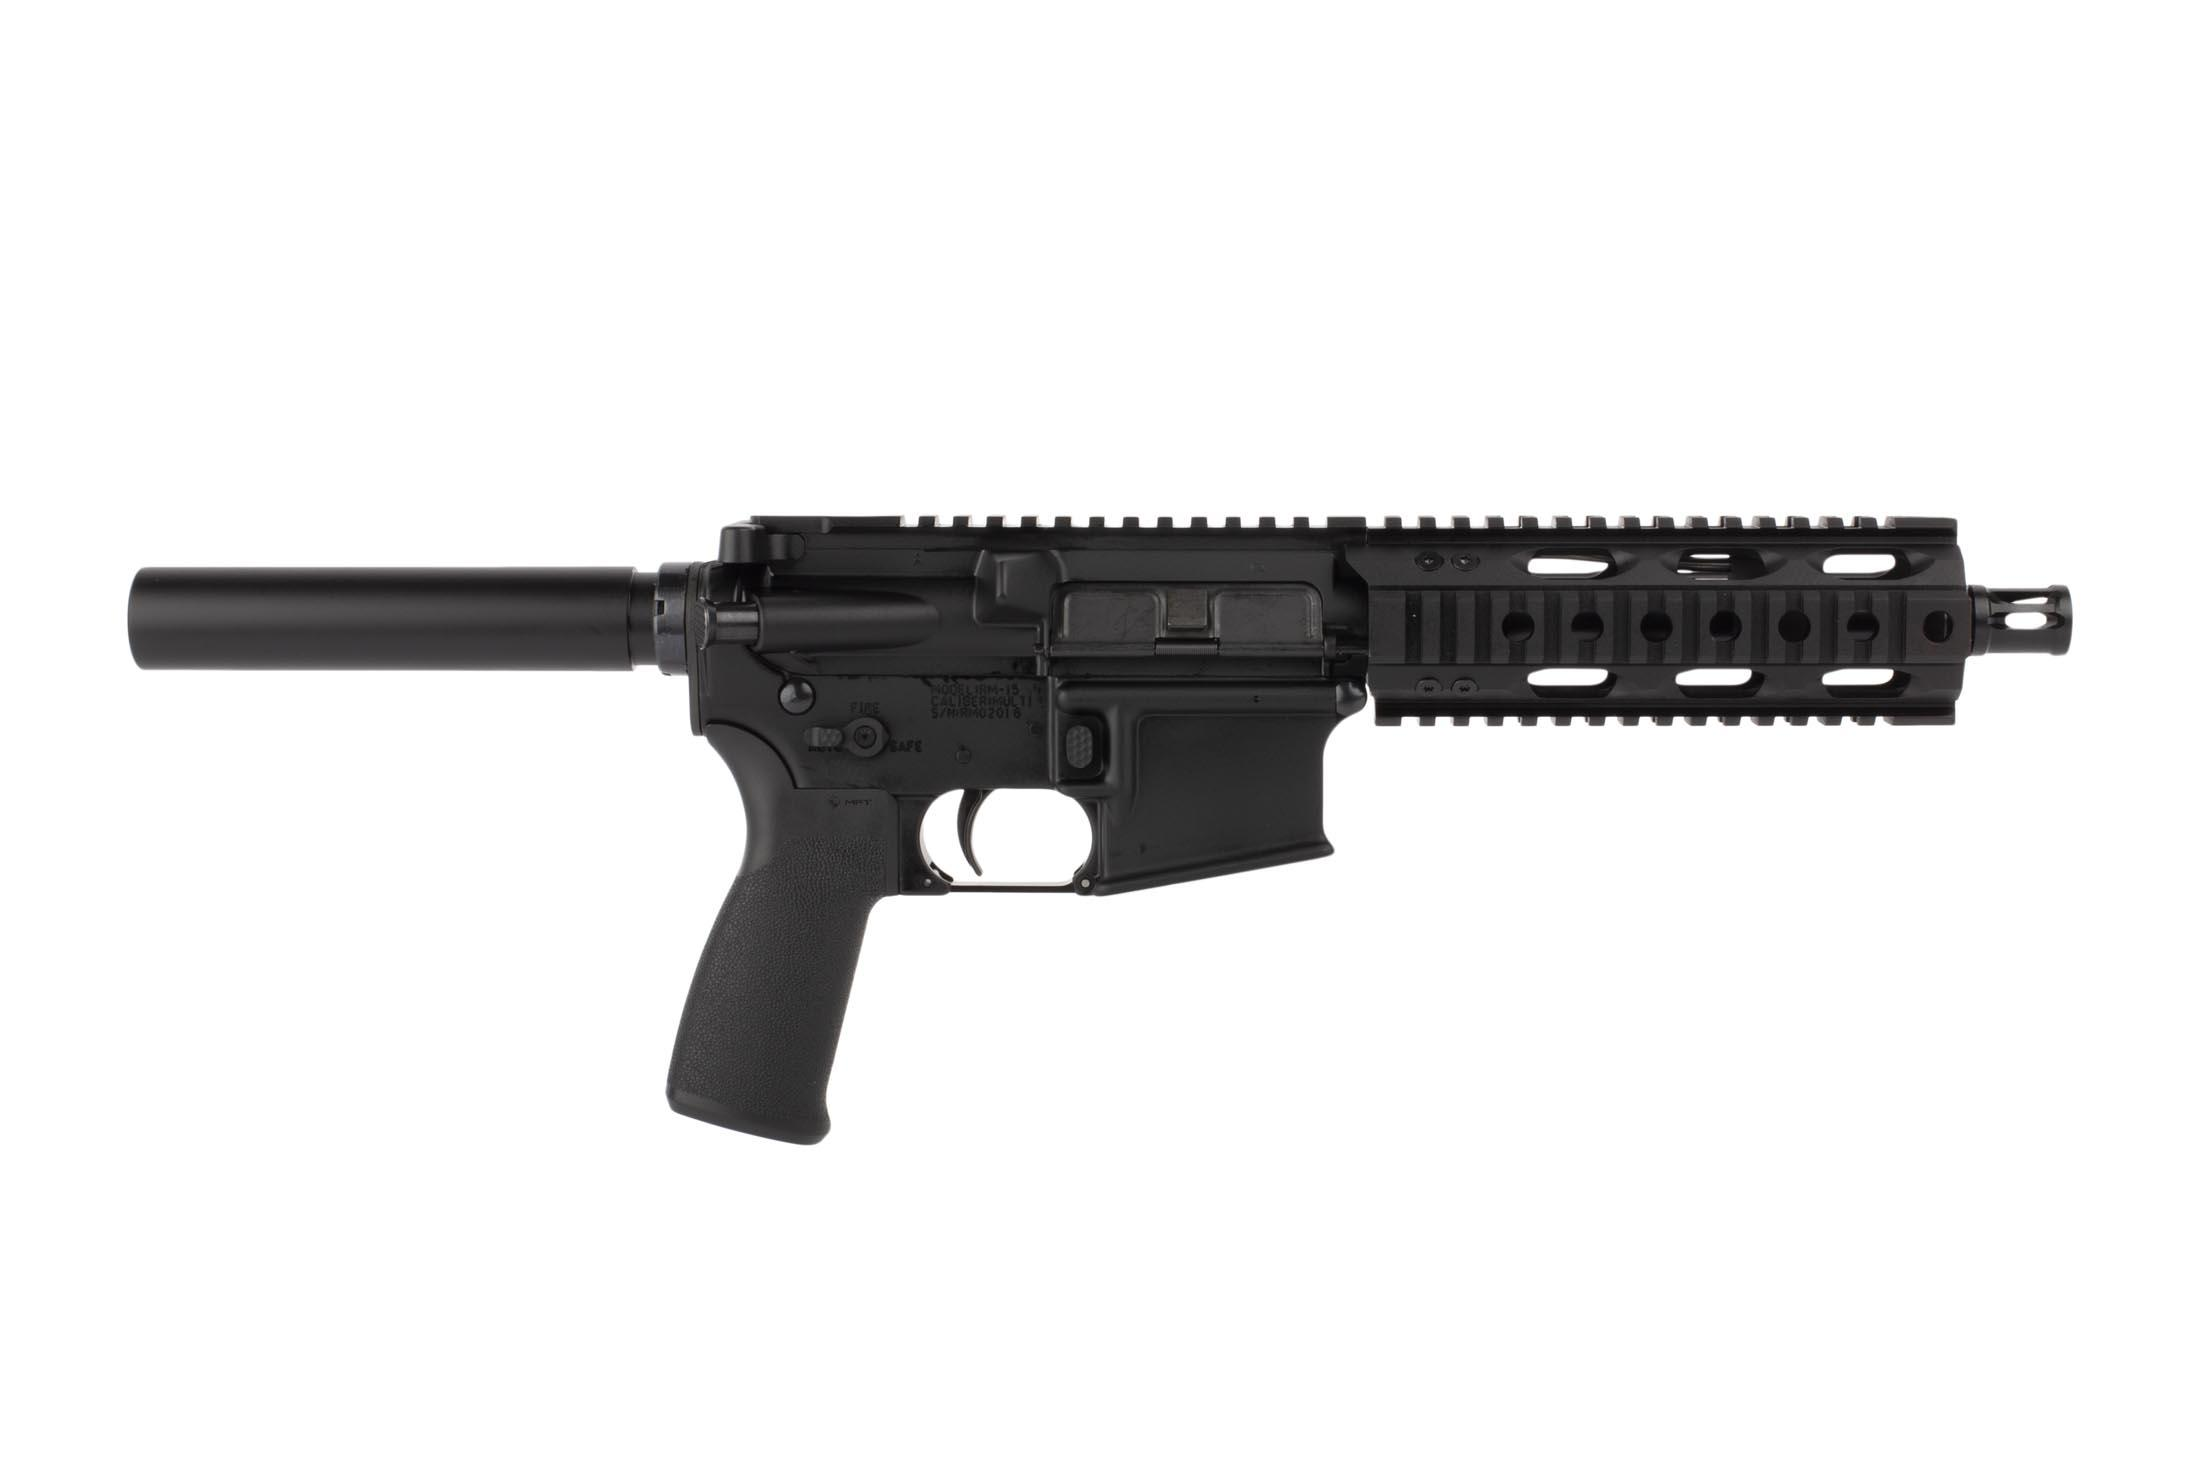 Radical Firearms 75in 556 NATO AR15 Pistol Features A Reliable Carbine Length Gas System